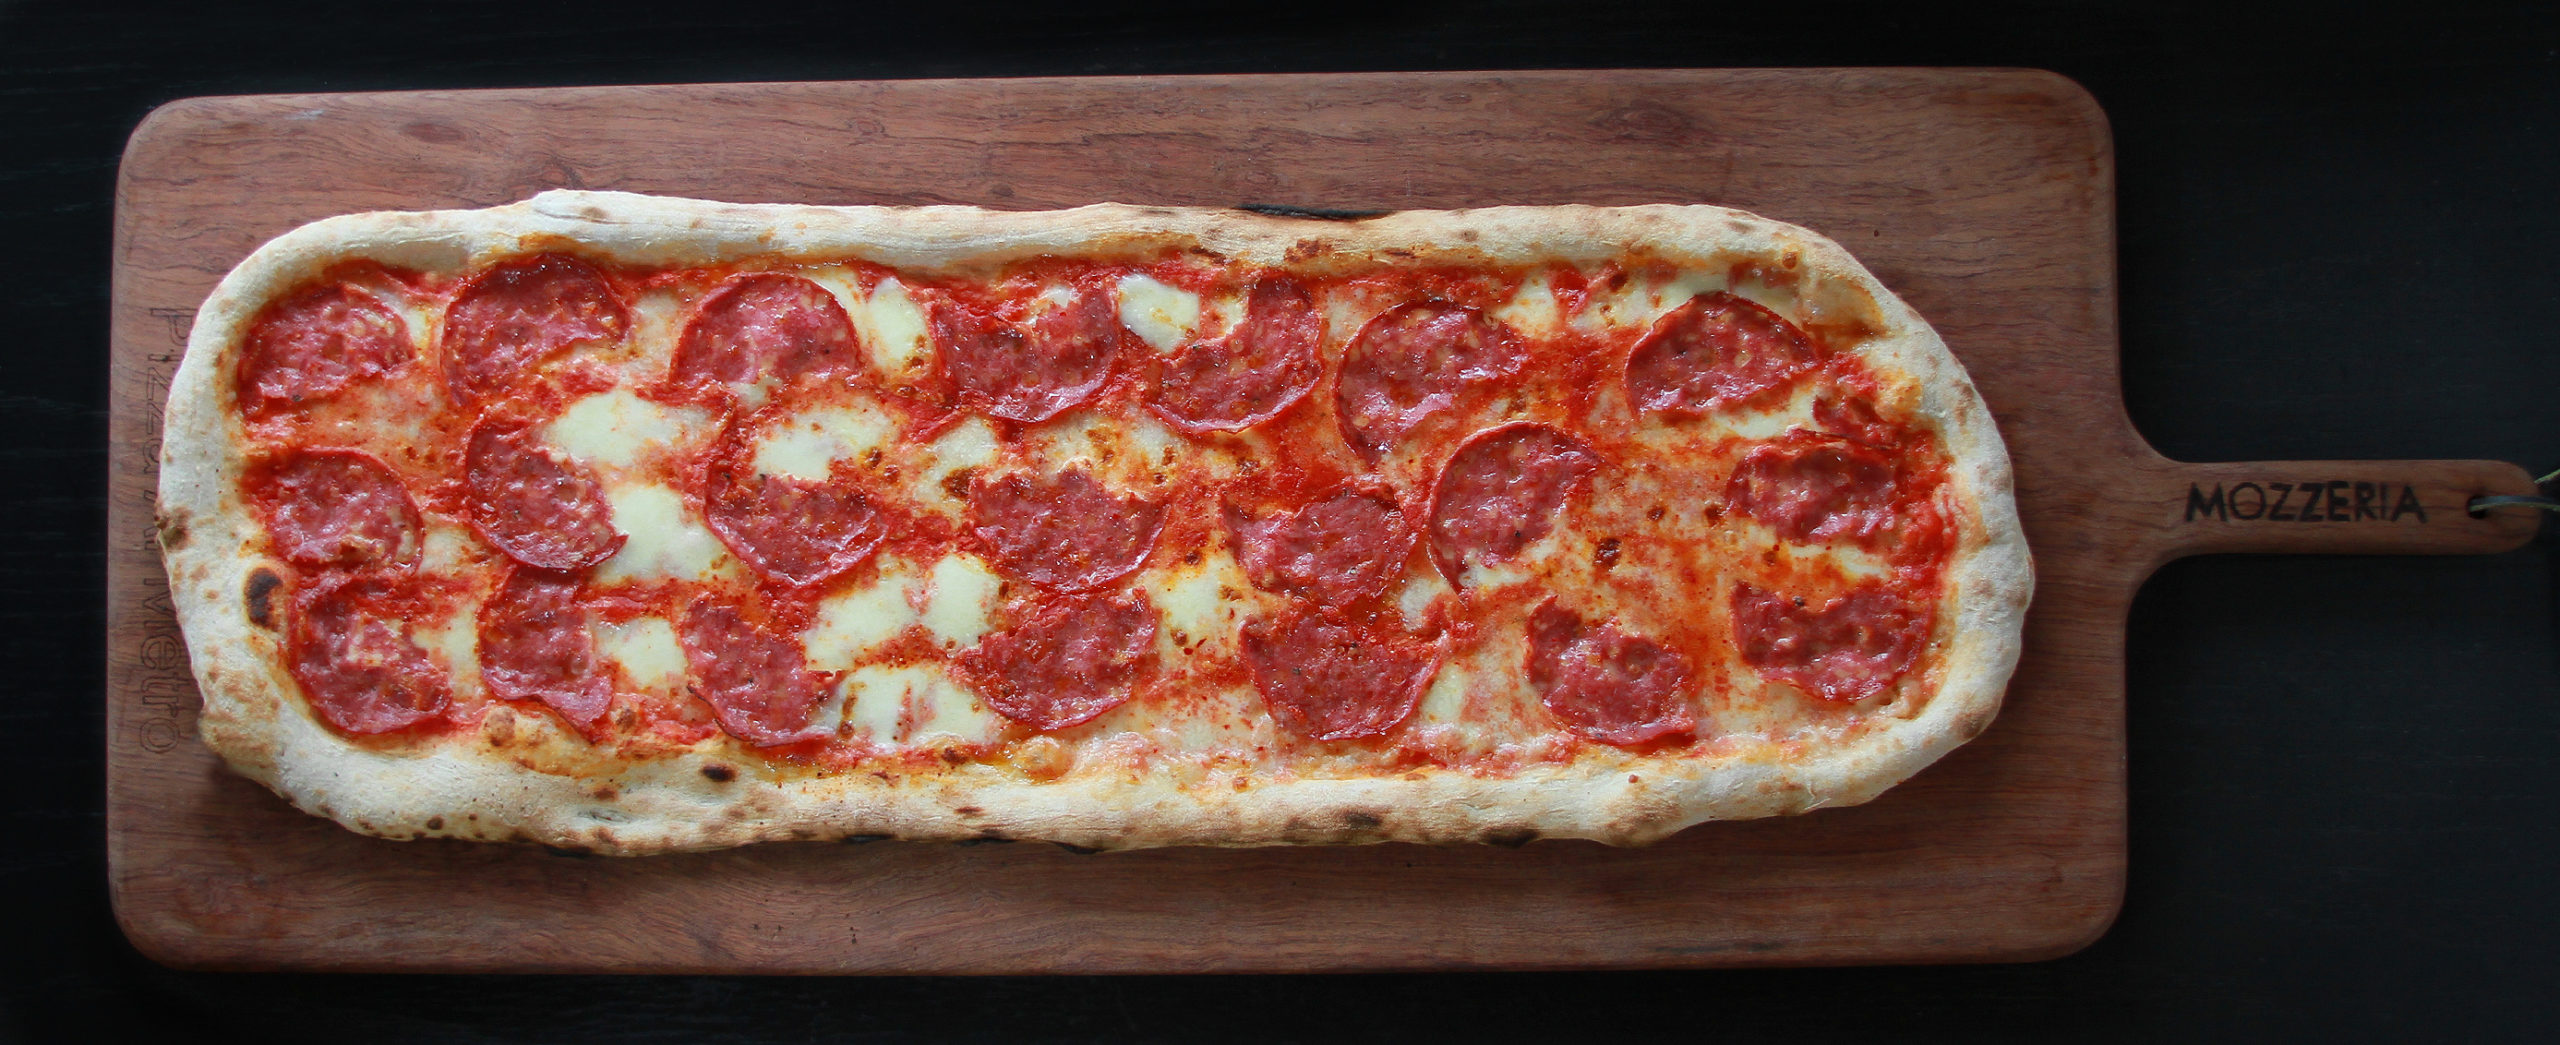 A long rectangle pepperoni pizza sitting on wooden peel